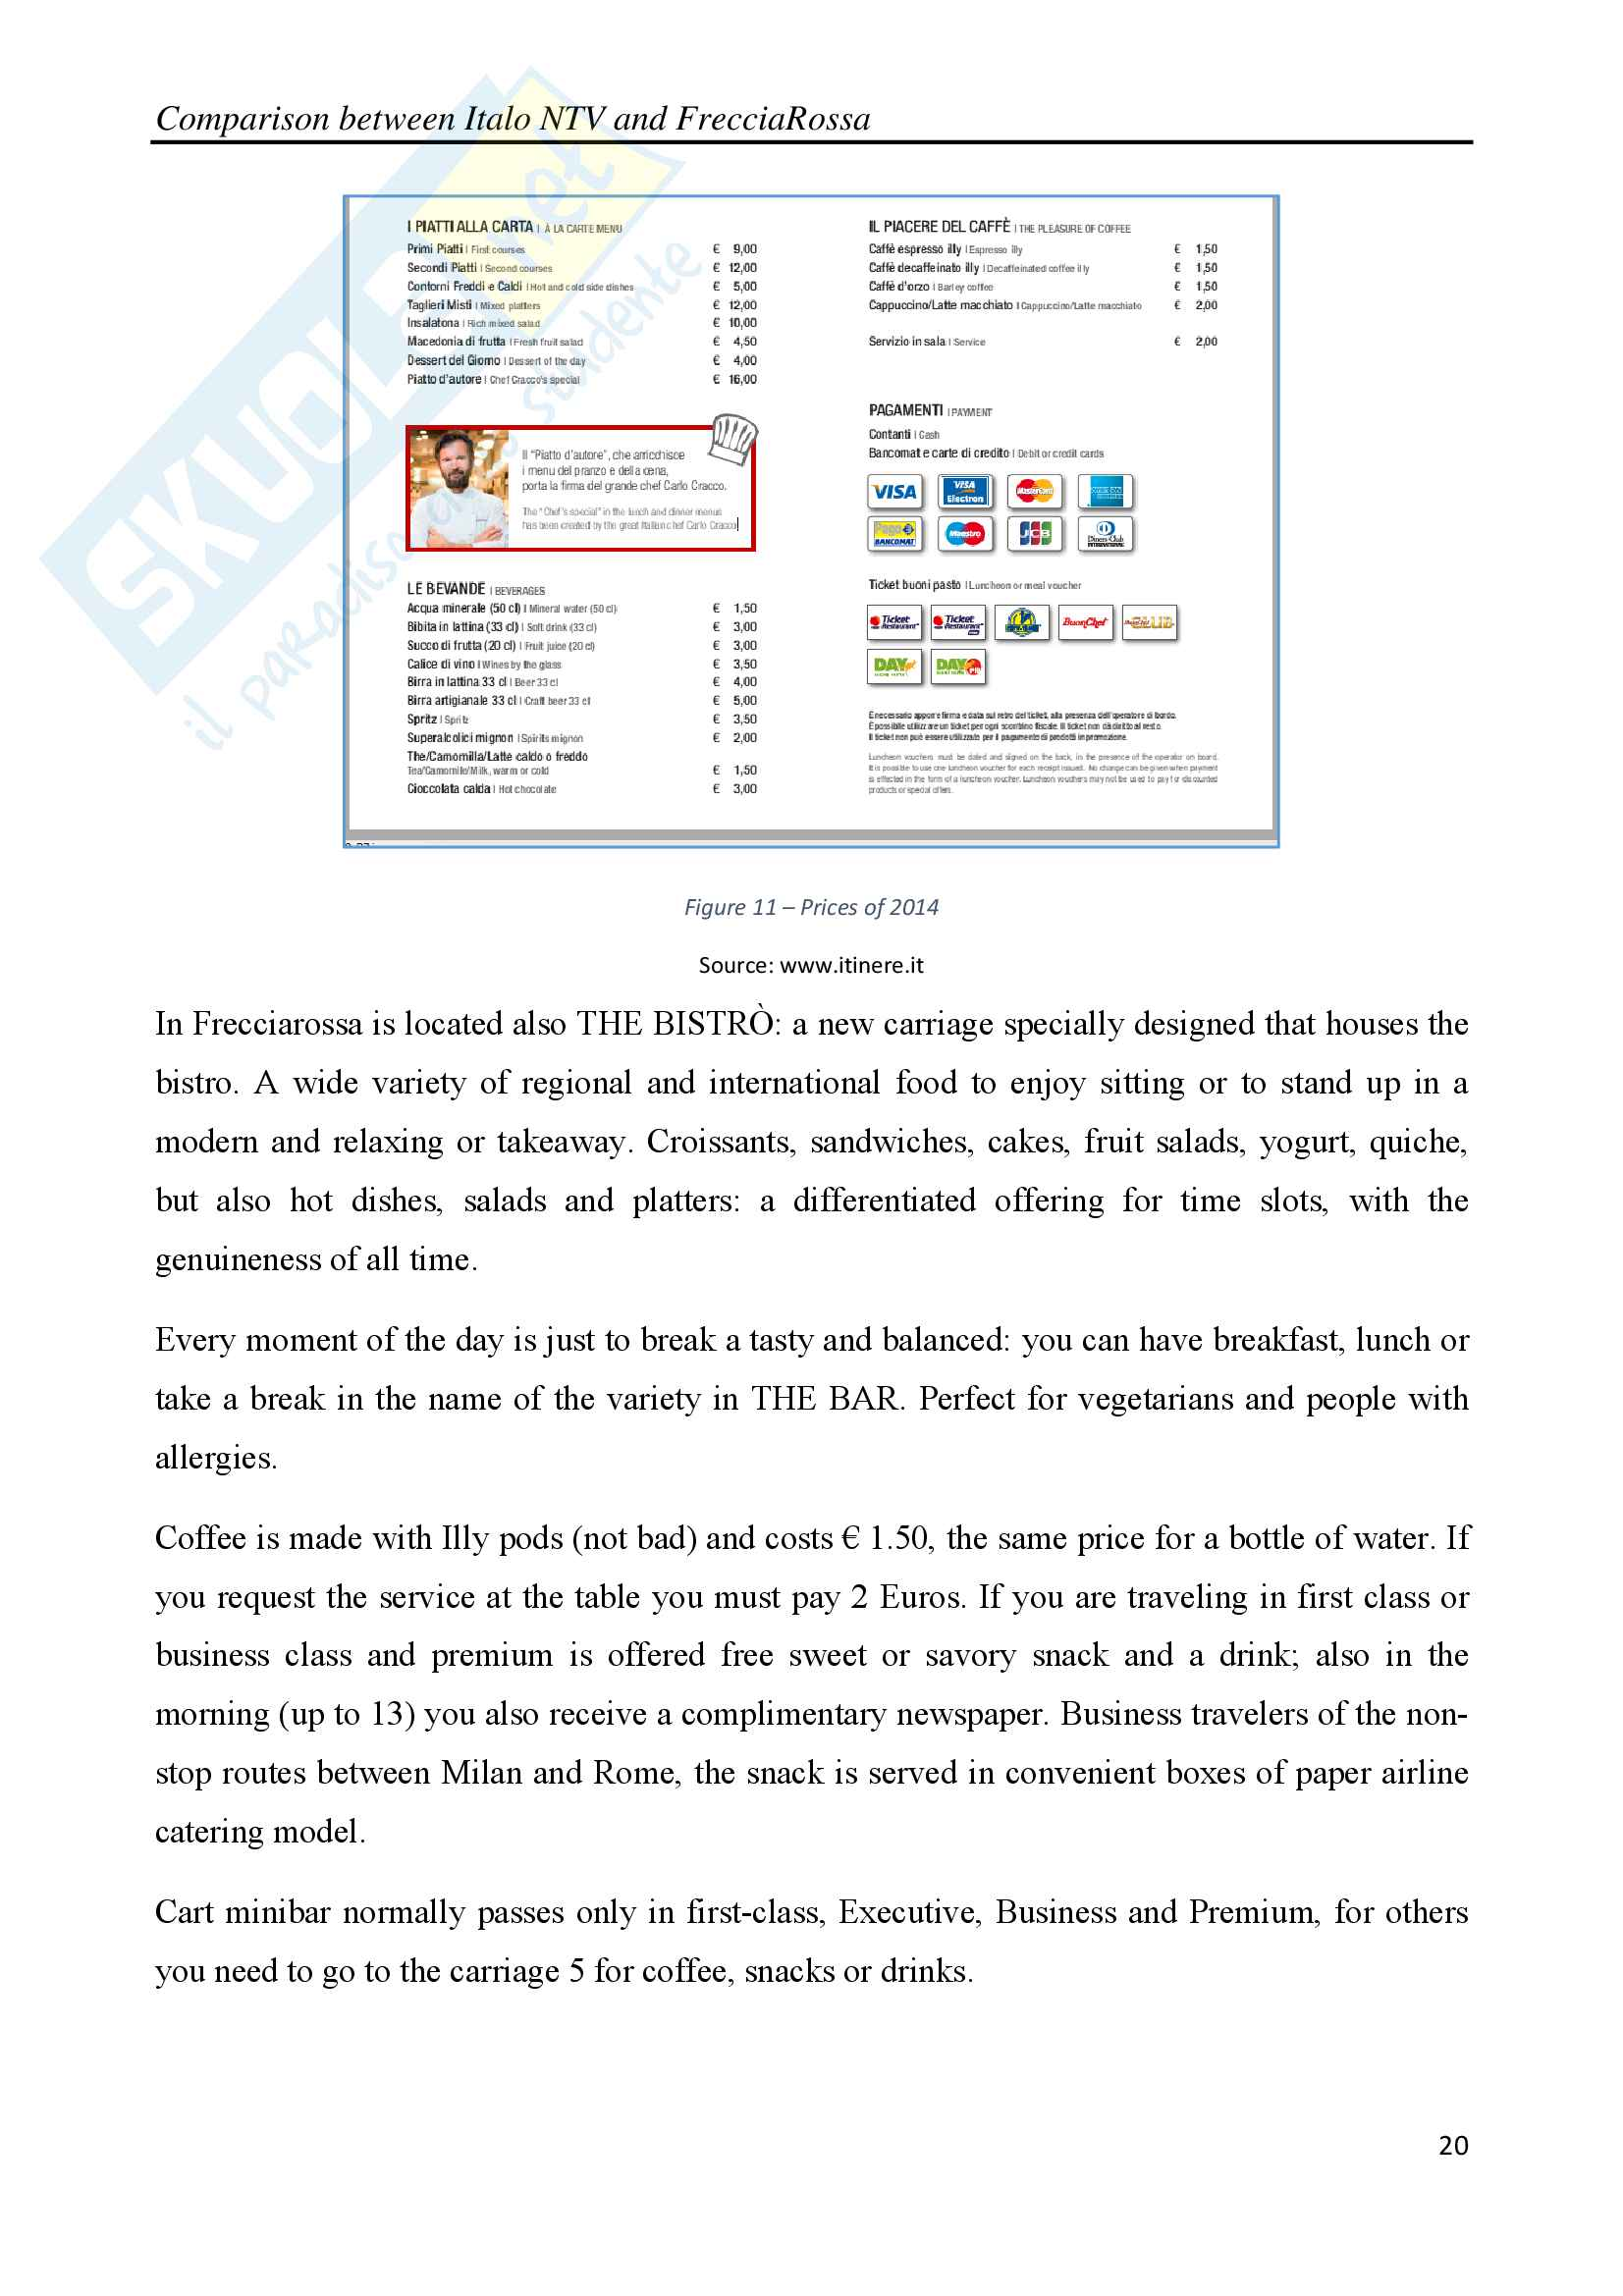 Comparison between Italo NTV and FrecciaRossa with legal, social and economic considerations Pag. 21